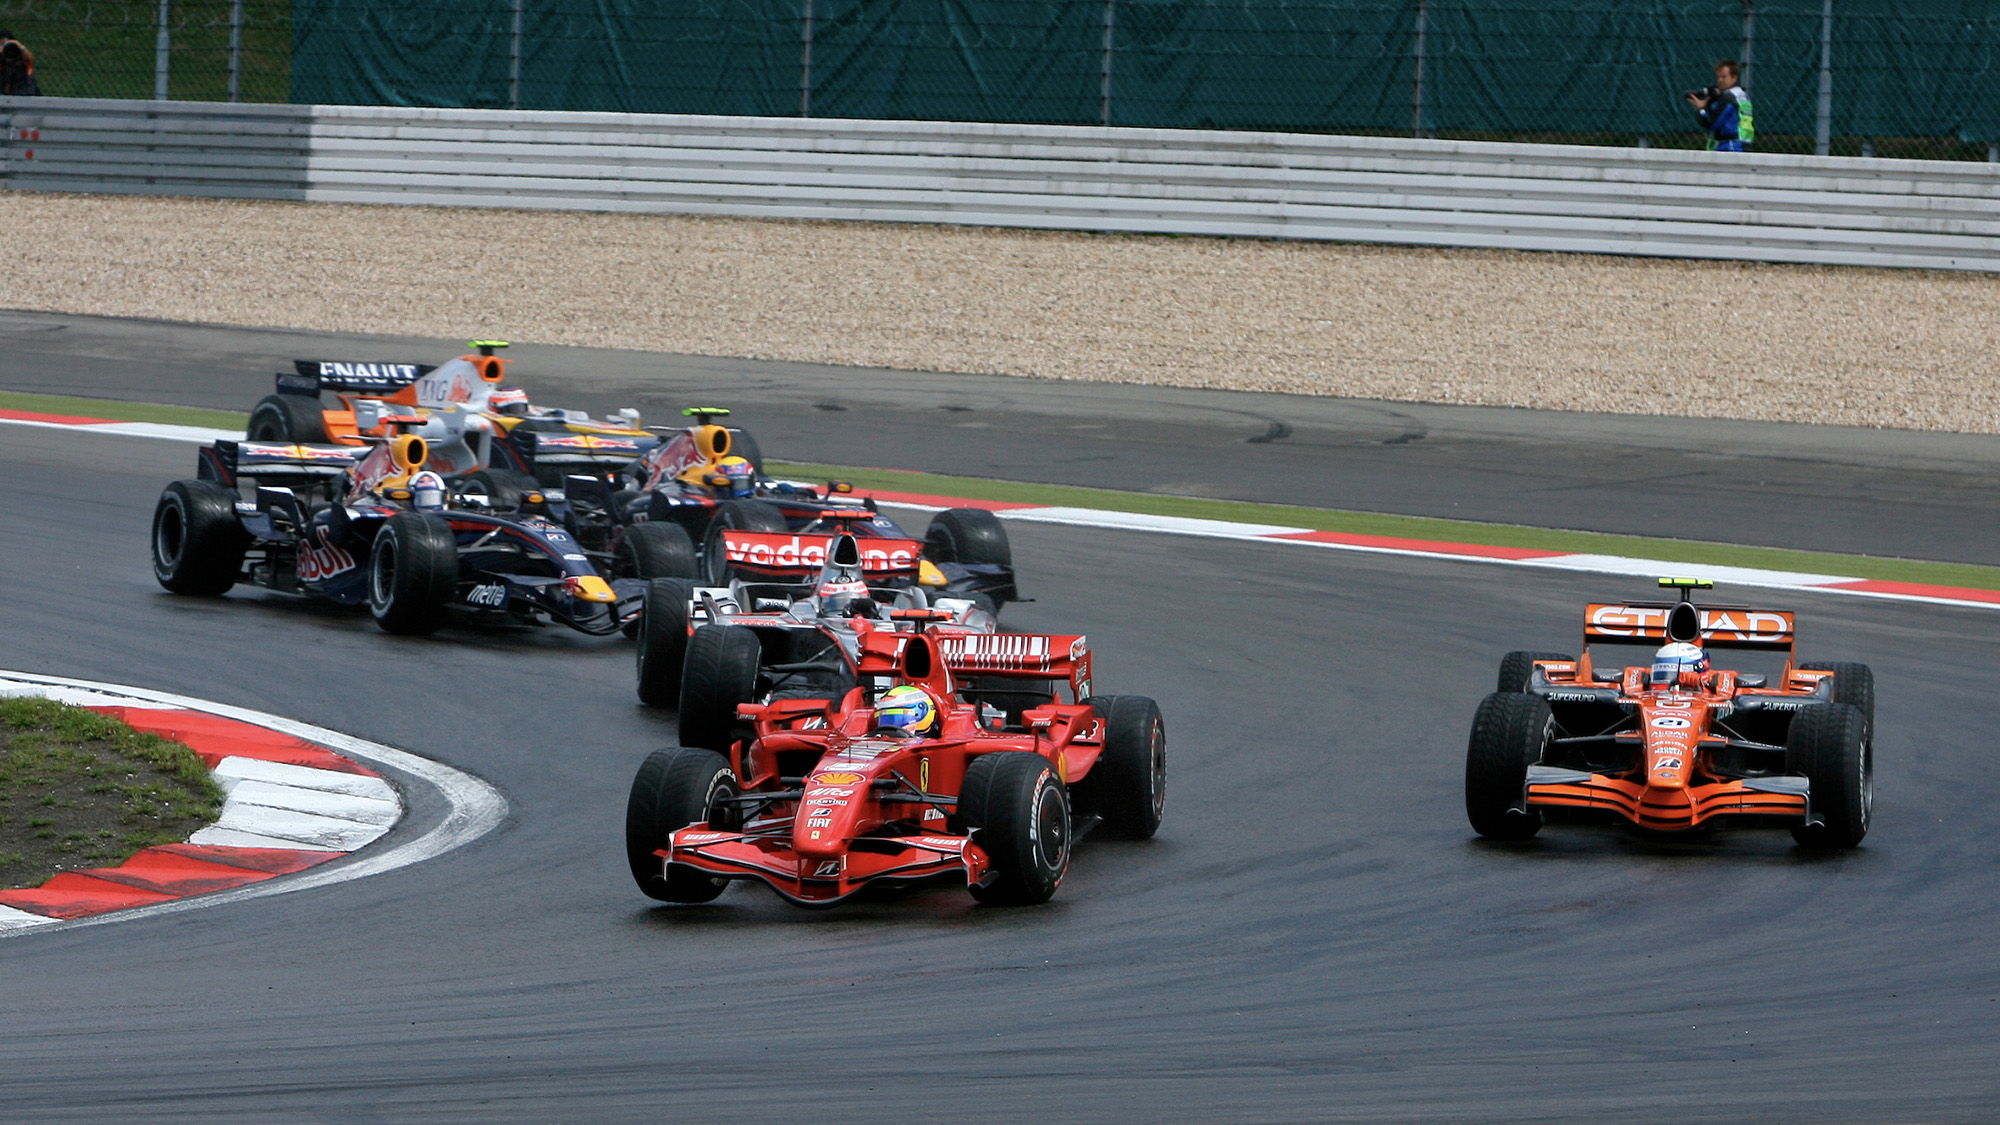 Felipe Massa overtakes Markus Winkelhock for the lead of the 2007 European F1 Grand Prix at the Nurburgring after the restart